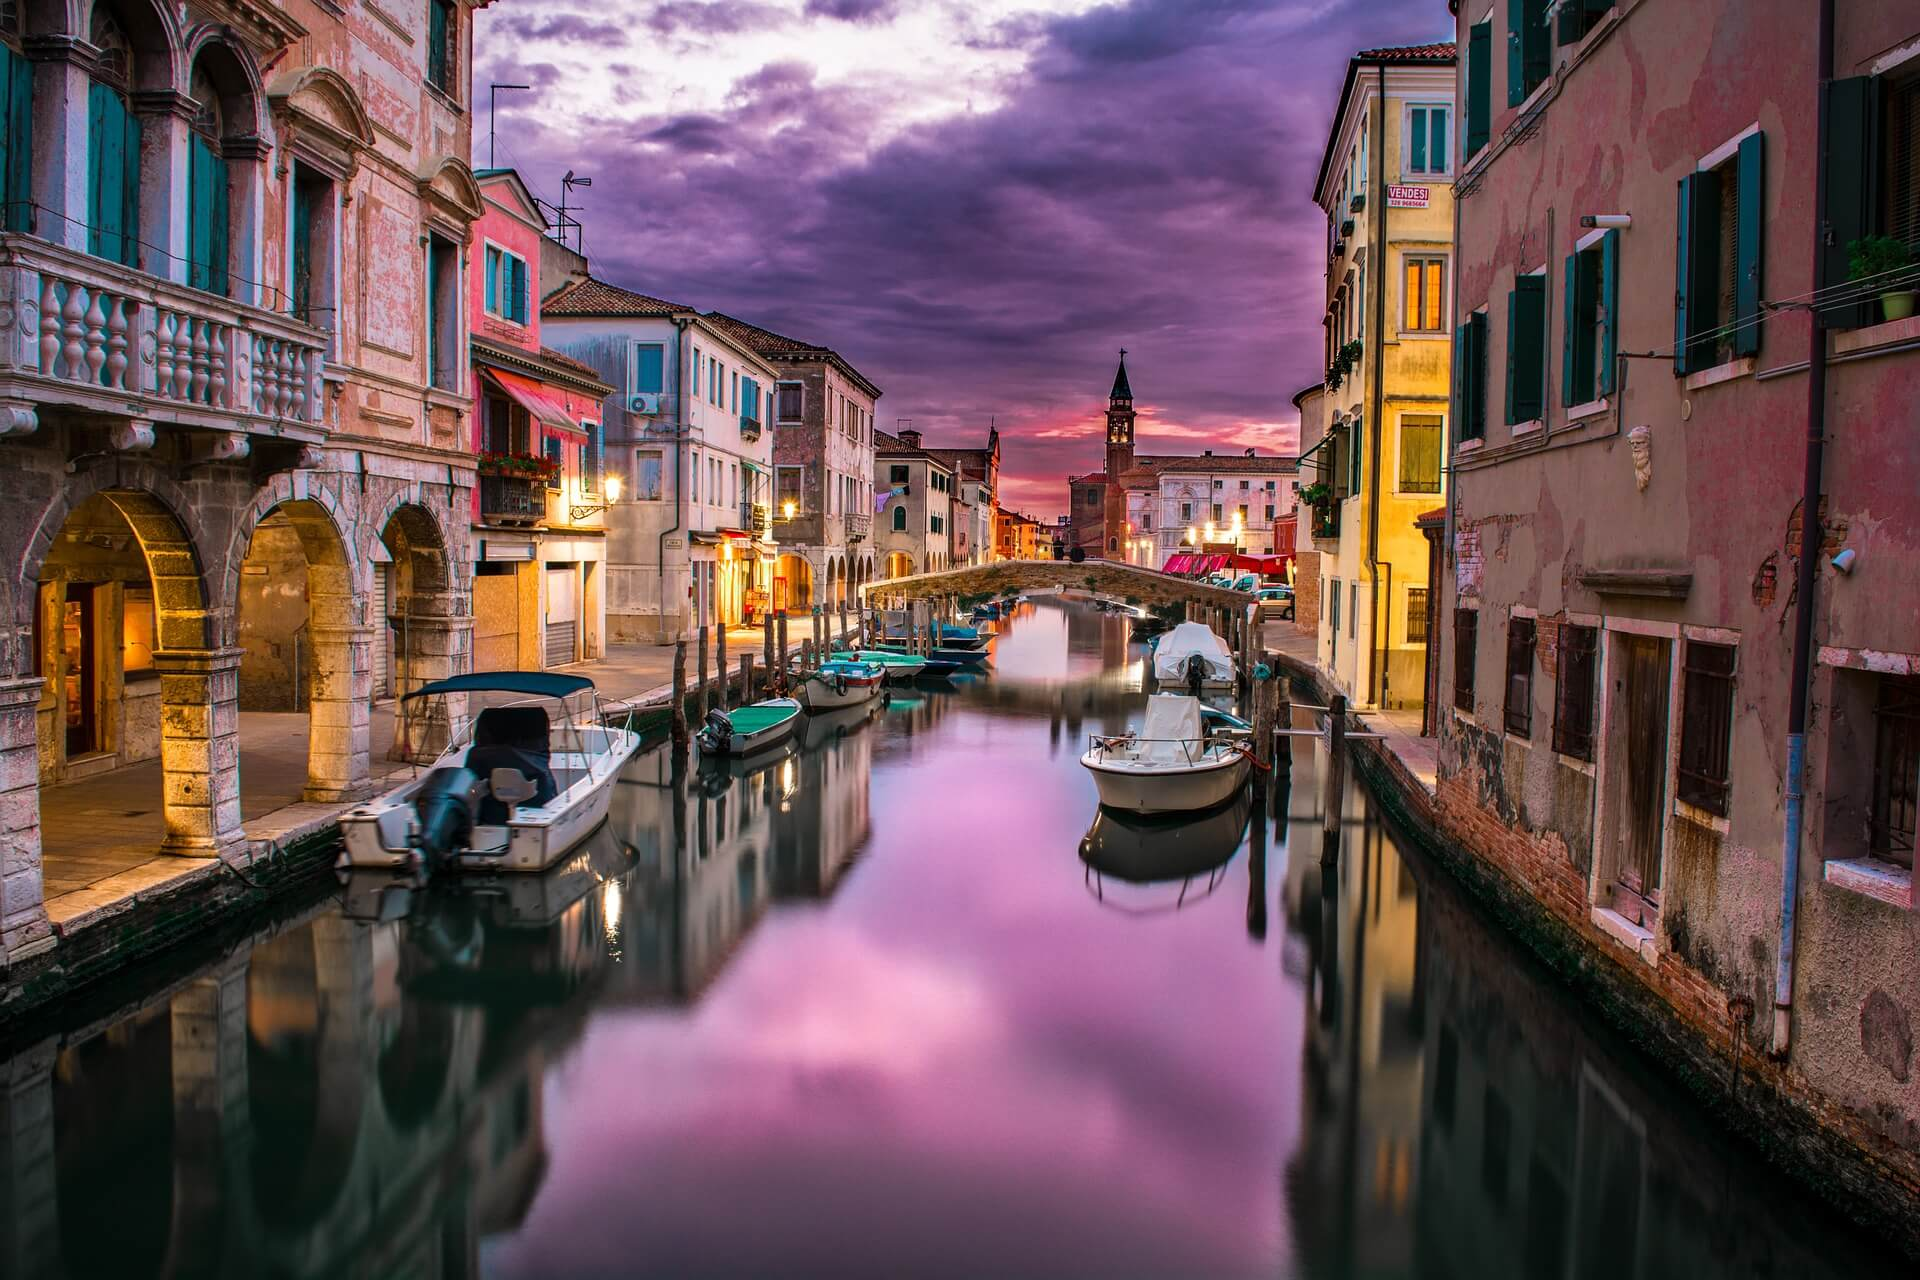 Italy E-invoicing: Esterometro Reporting Requirements for Cross-border Transactions Updated